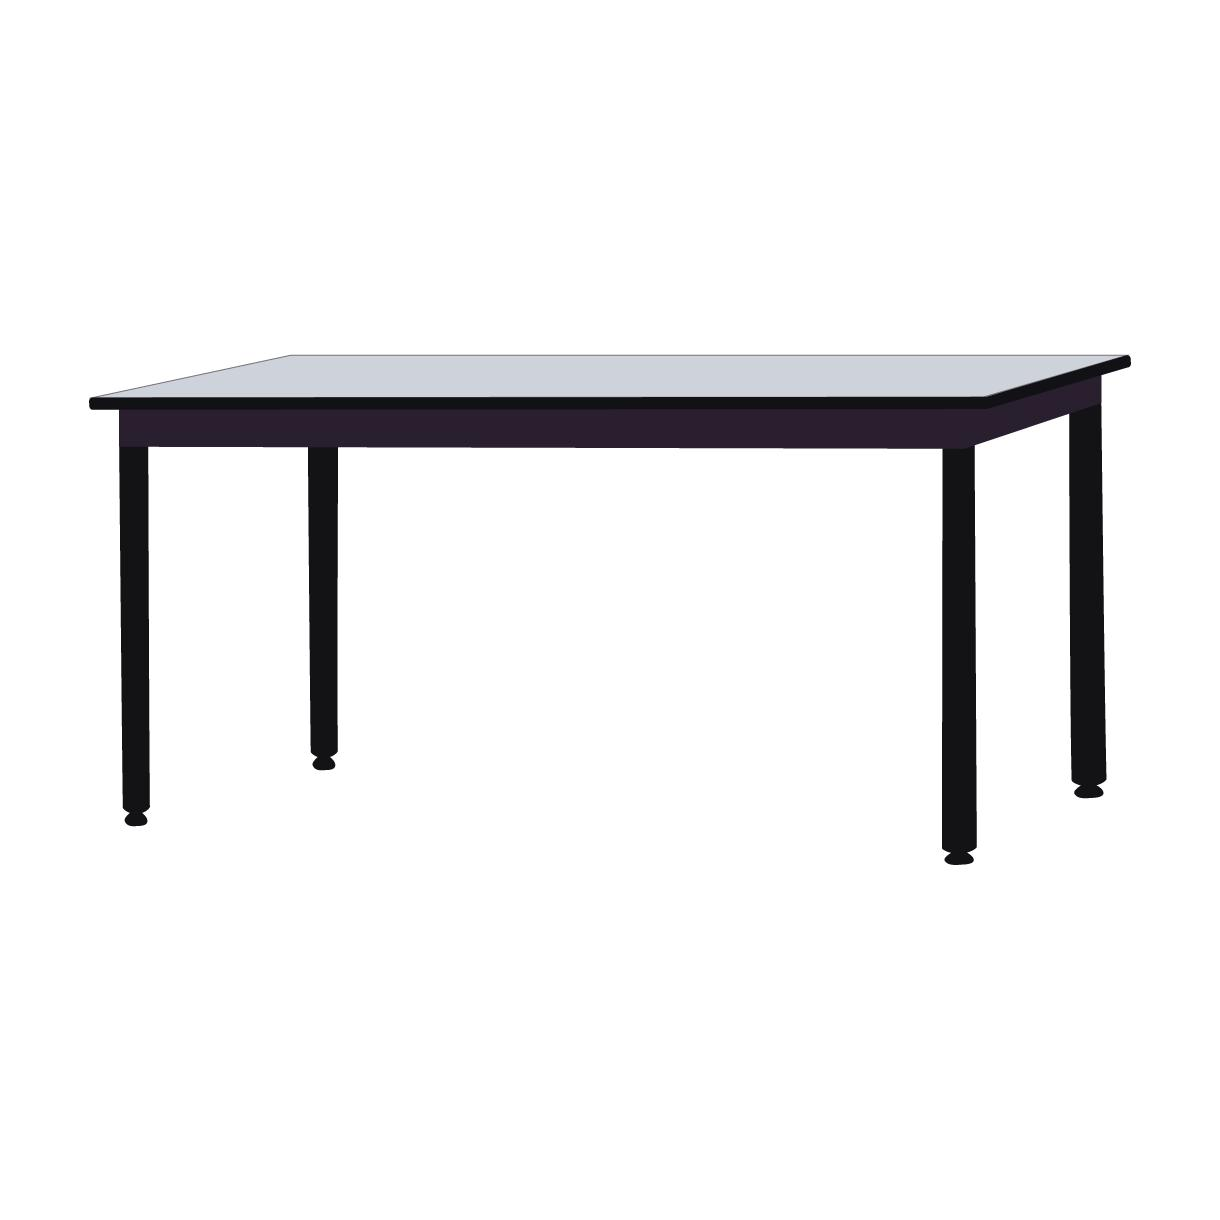 Meeting Table 2.5ft x 5ft (760 x 1520mm)